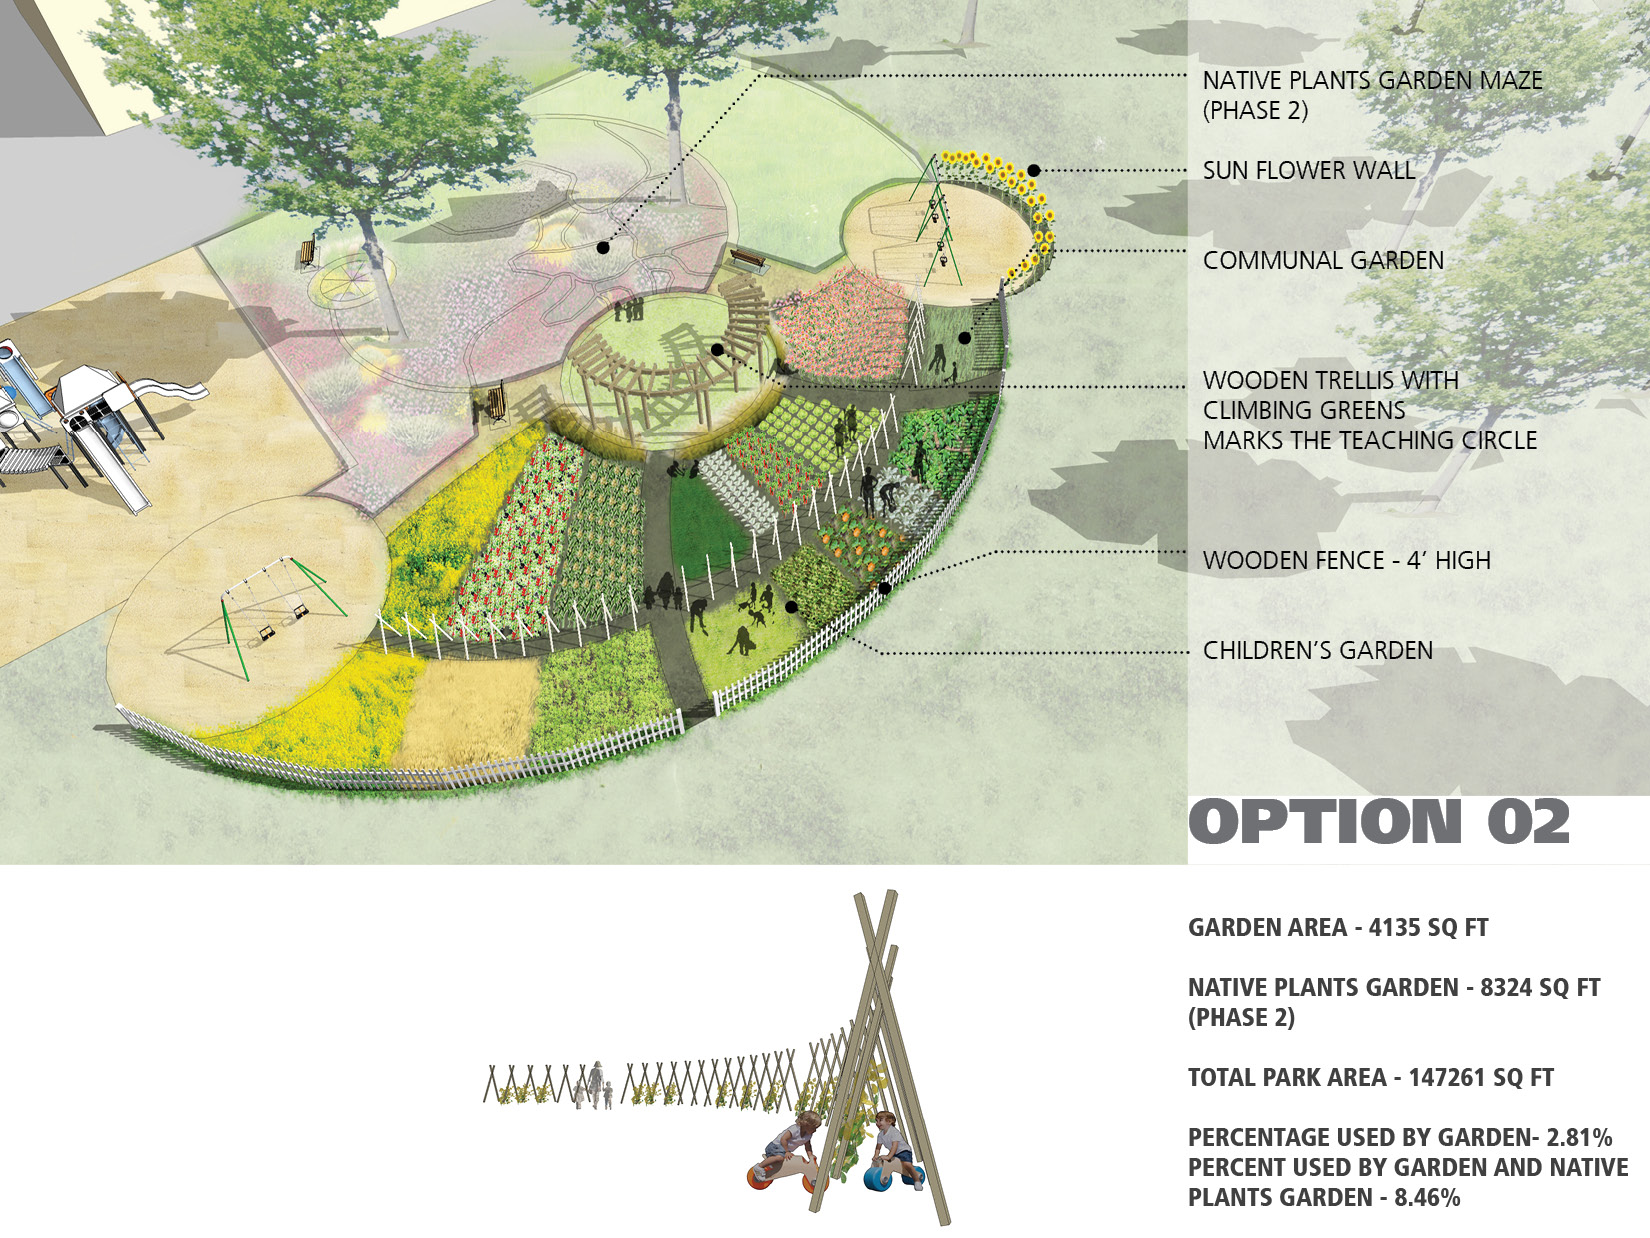 Garden designs dallington pollinators community garden for How to design garden layout